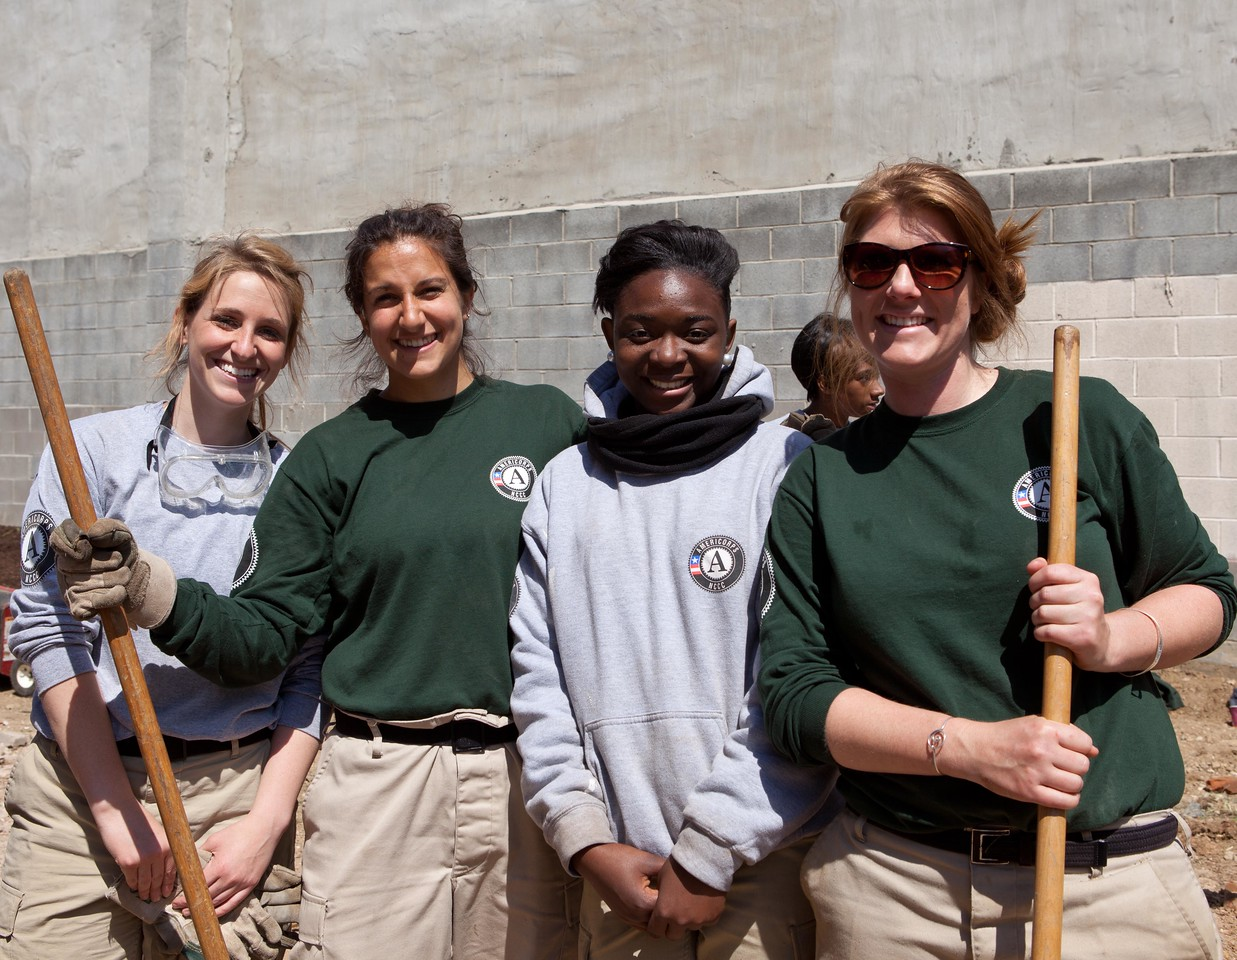 AmeriCorps members show their pride in a job well done at the Service Bowl in Baltimore, MD. Corporation for National and Community Service Photo.